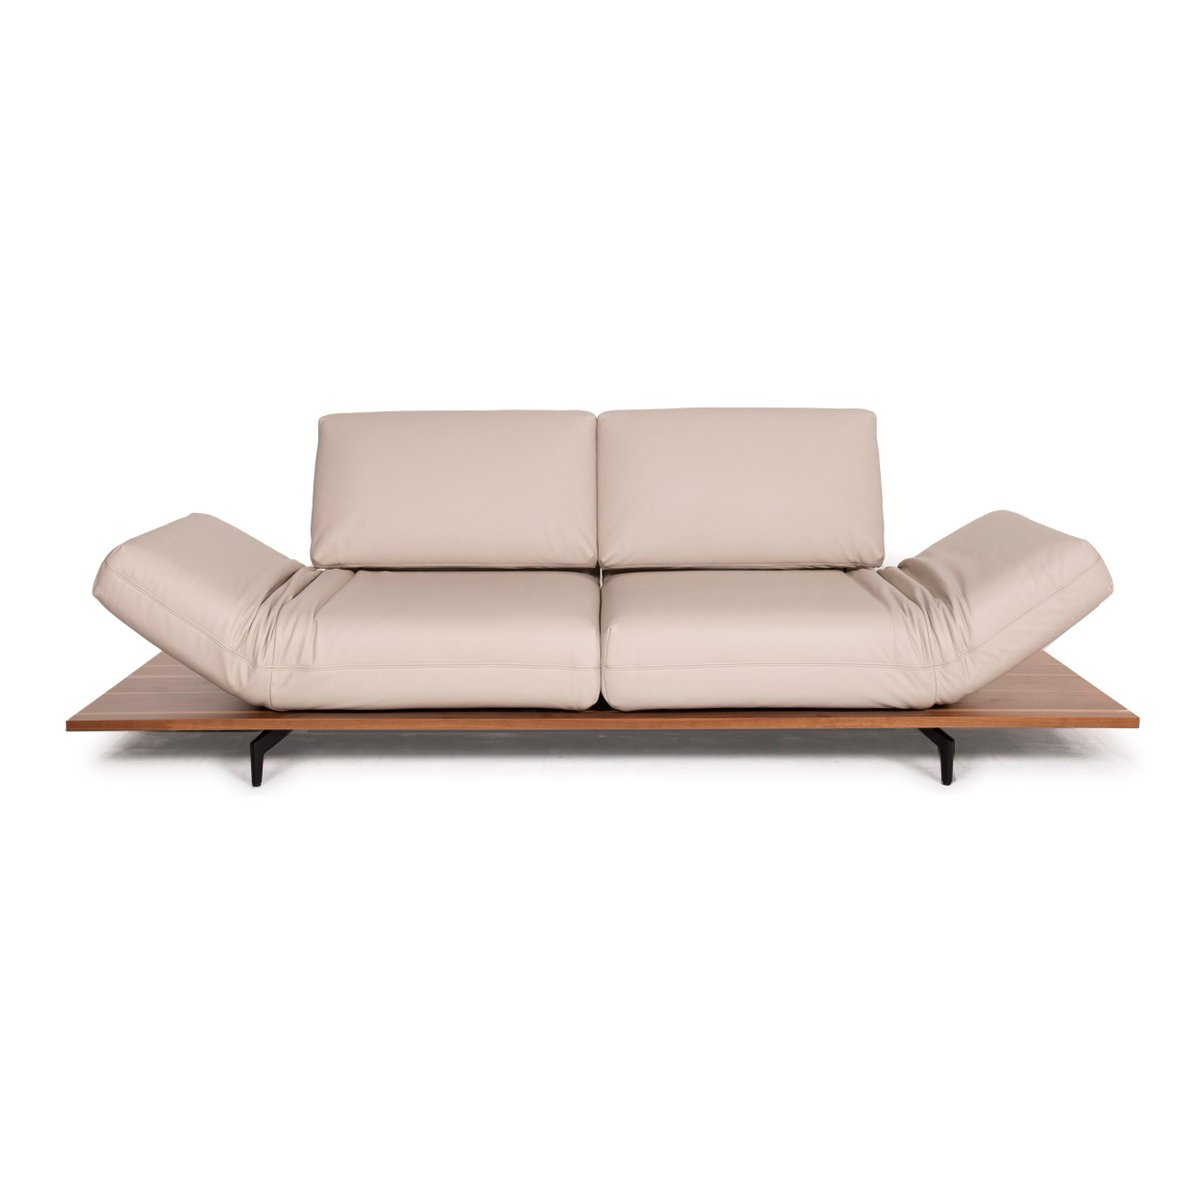 Aura Cream Leather Sofa By Rolf Benz For Sale At Pamono